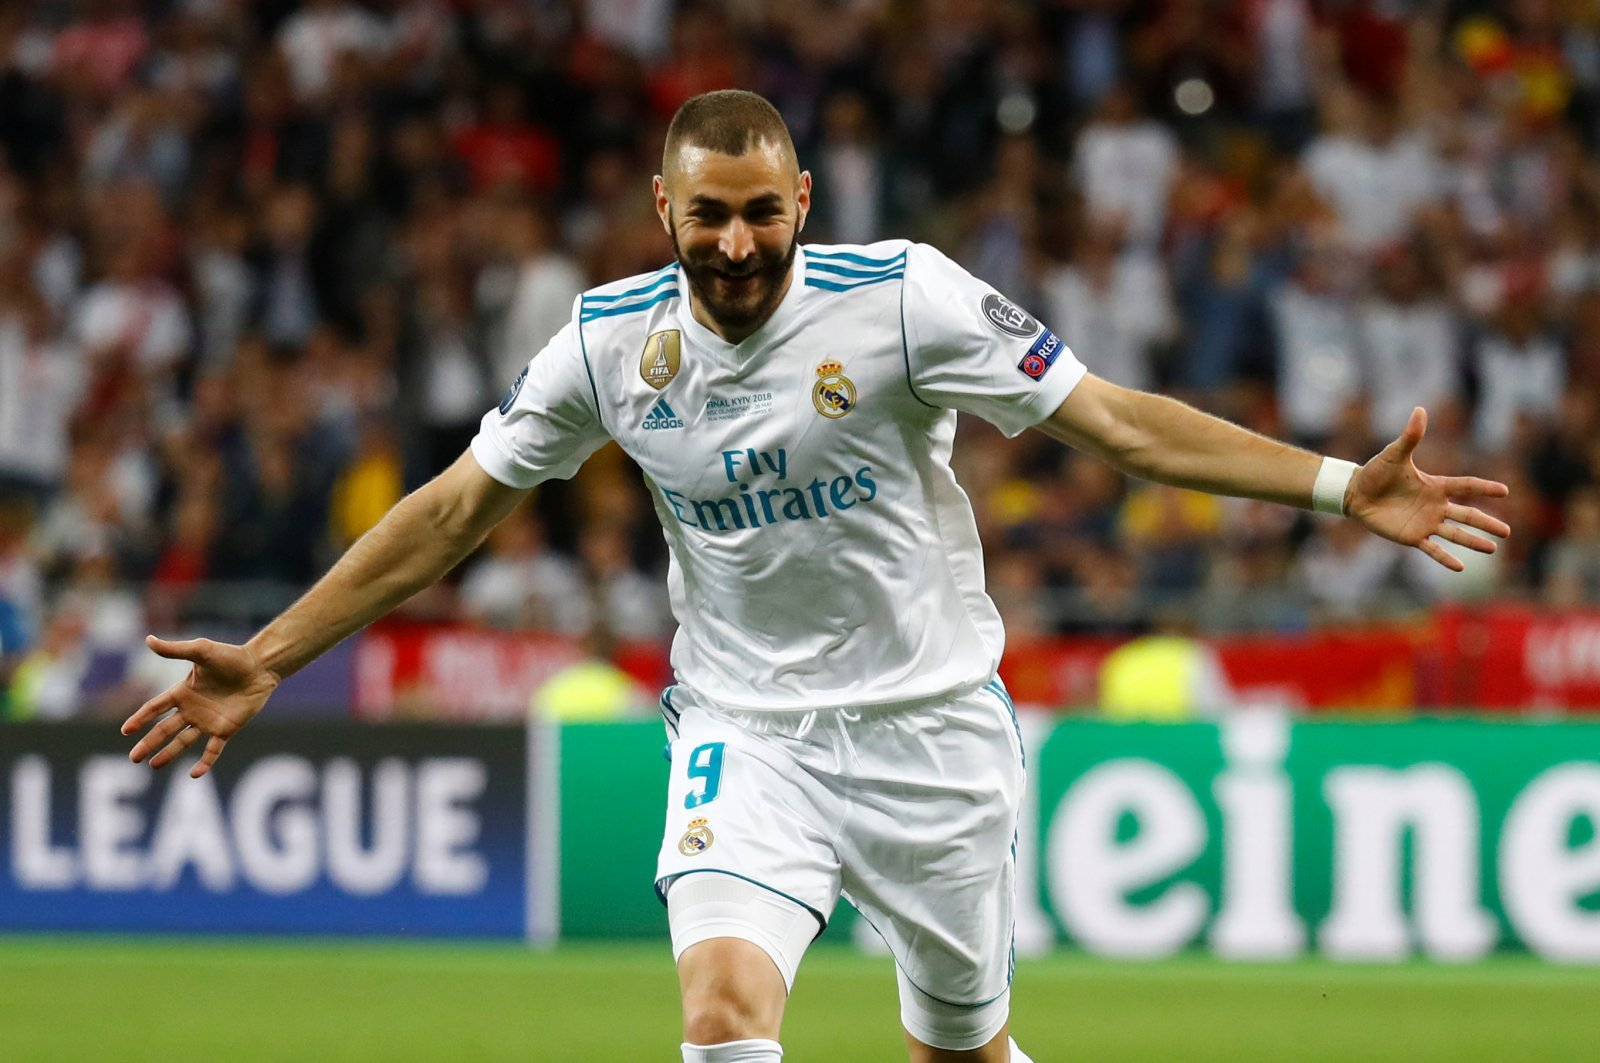 Real Madrid: Los Blancos looking to reward Karim Benzema with a new contract